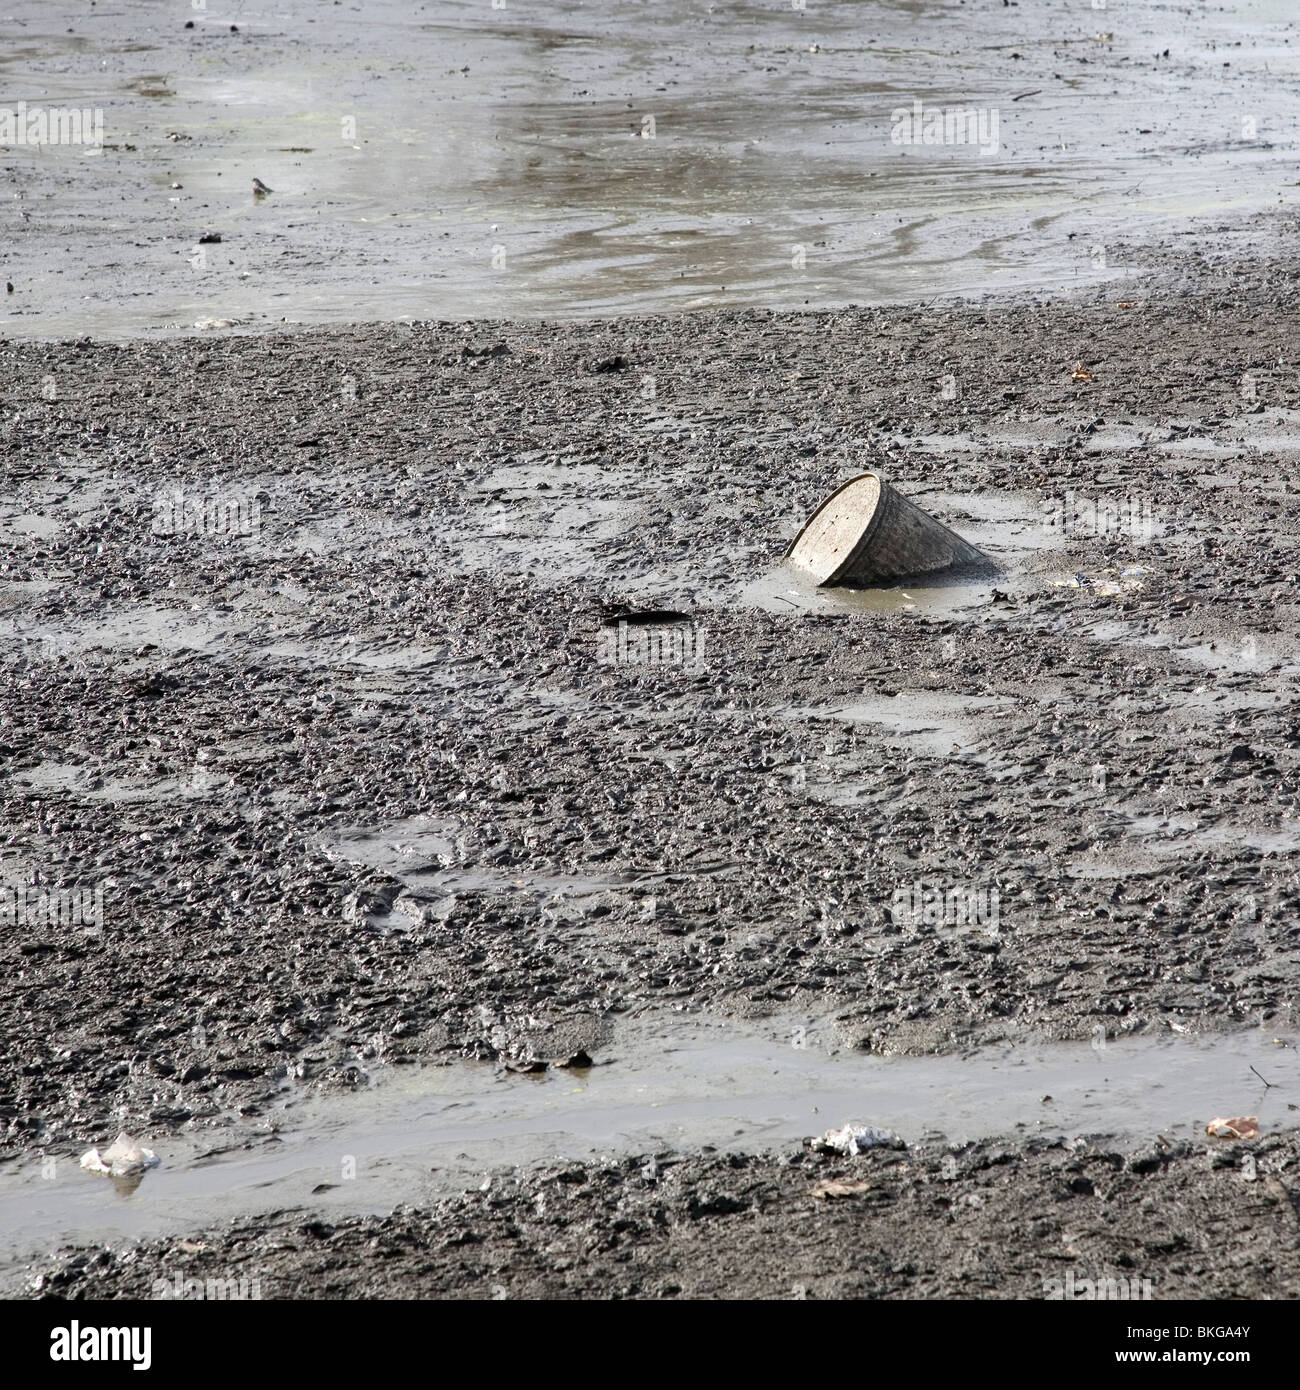 Drum in the mud - Stock Image